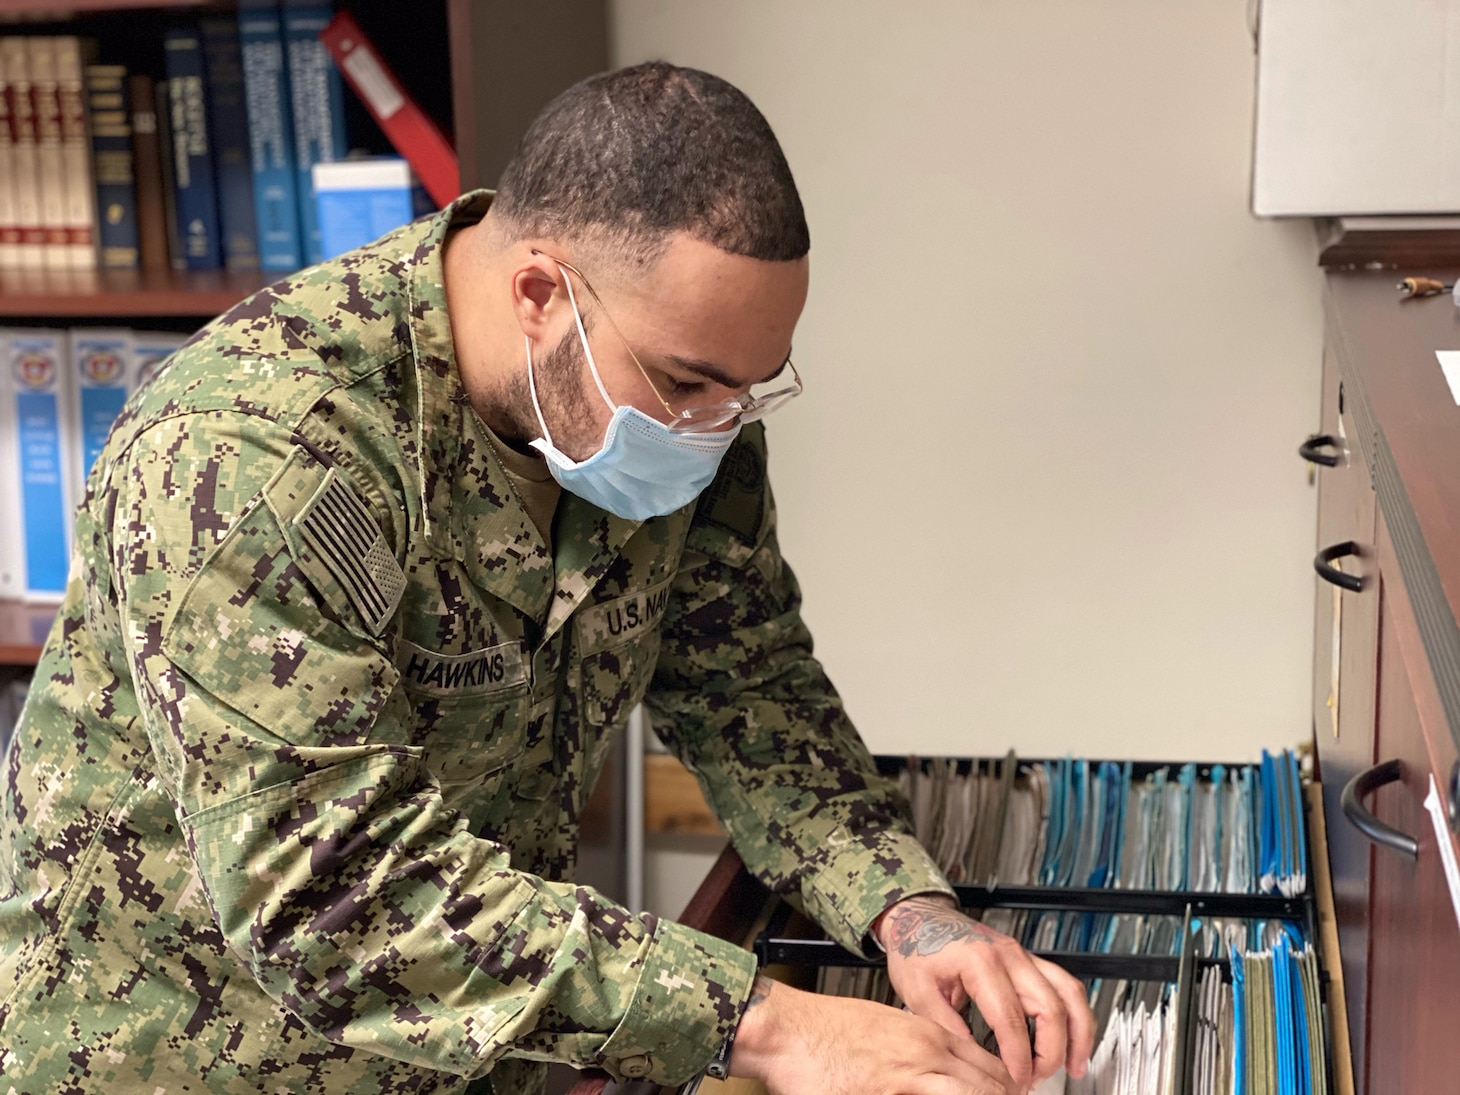 LITTLE ROCK, Arkansas (Jan. 9, 2021) - Damage Controlman 3rd Class Dante Hawkins, assigned as a Medical department representative at Navy Operational Support Center (NOSC) Little Rock, pulls a medical record while conducting physical health assessments of Selected Reservist (SELRES) Sailors during NOSC Little Rock's first drill weekend of the year. In its effort of taking a more streamlined approach to warfighting readiness in accordance with the Chief of Navy Reserve's recently released Fighting Instructions, NOSC Little Rock contucted tailored training, performed medical readiness examinations and immunizations, and facilitated establishing communication between SELRES Sailors and their cross-assigned in units. (U.S. Navy photo taken by Electronics Technician 1st Class Stephen Landry/Released)